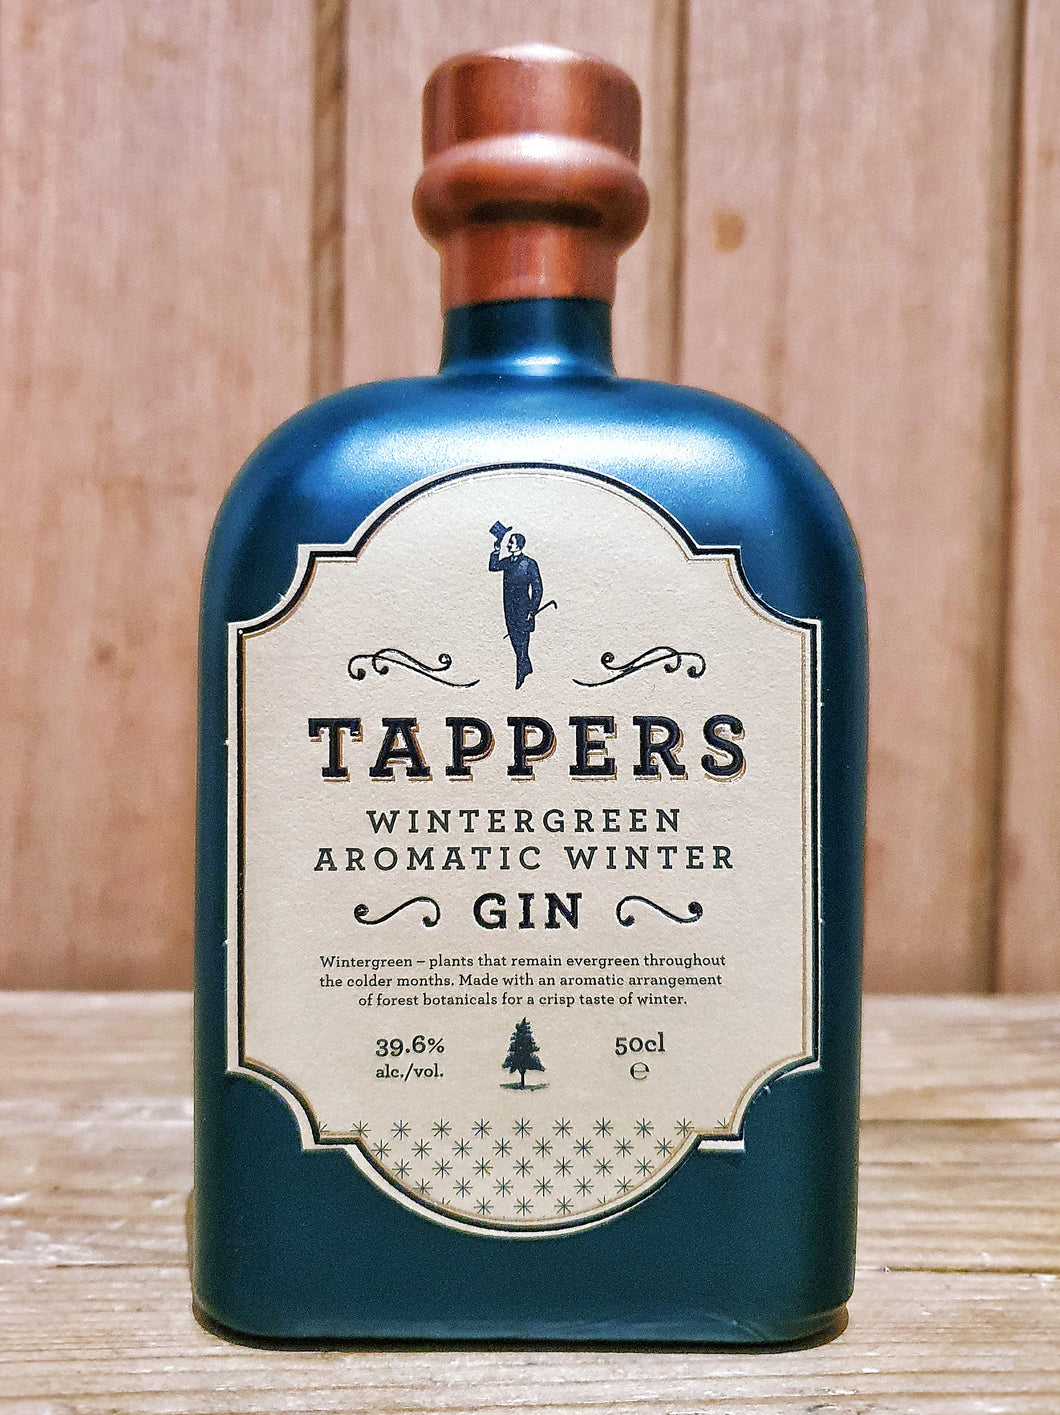 Tappers - Wintergreen Aromatic Winter Gin